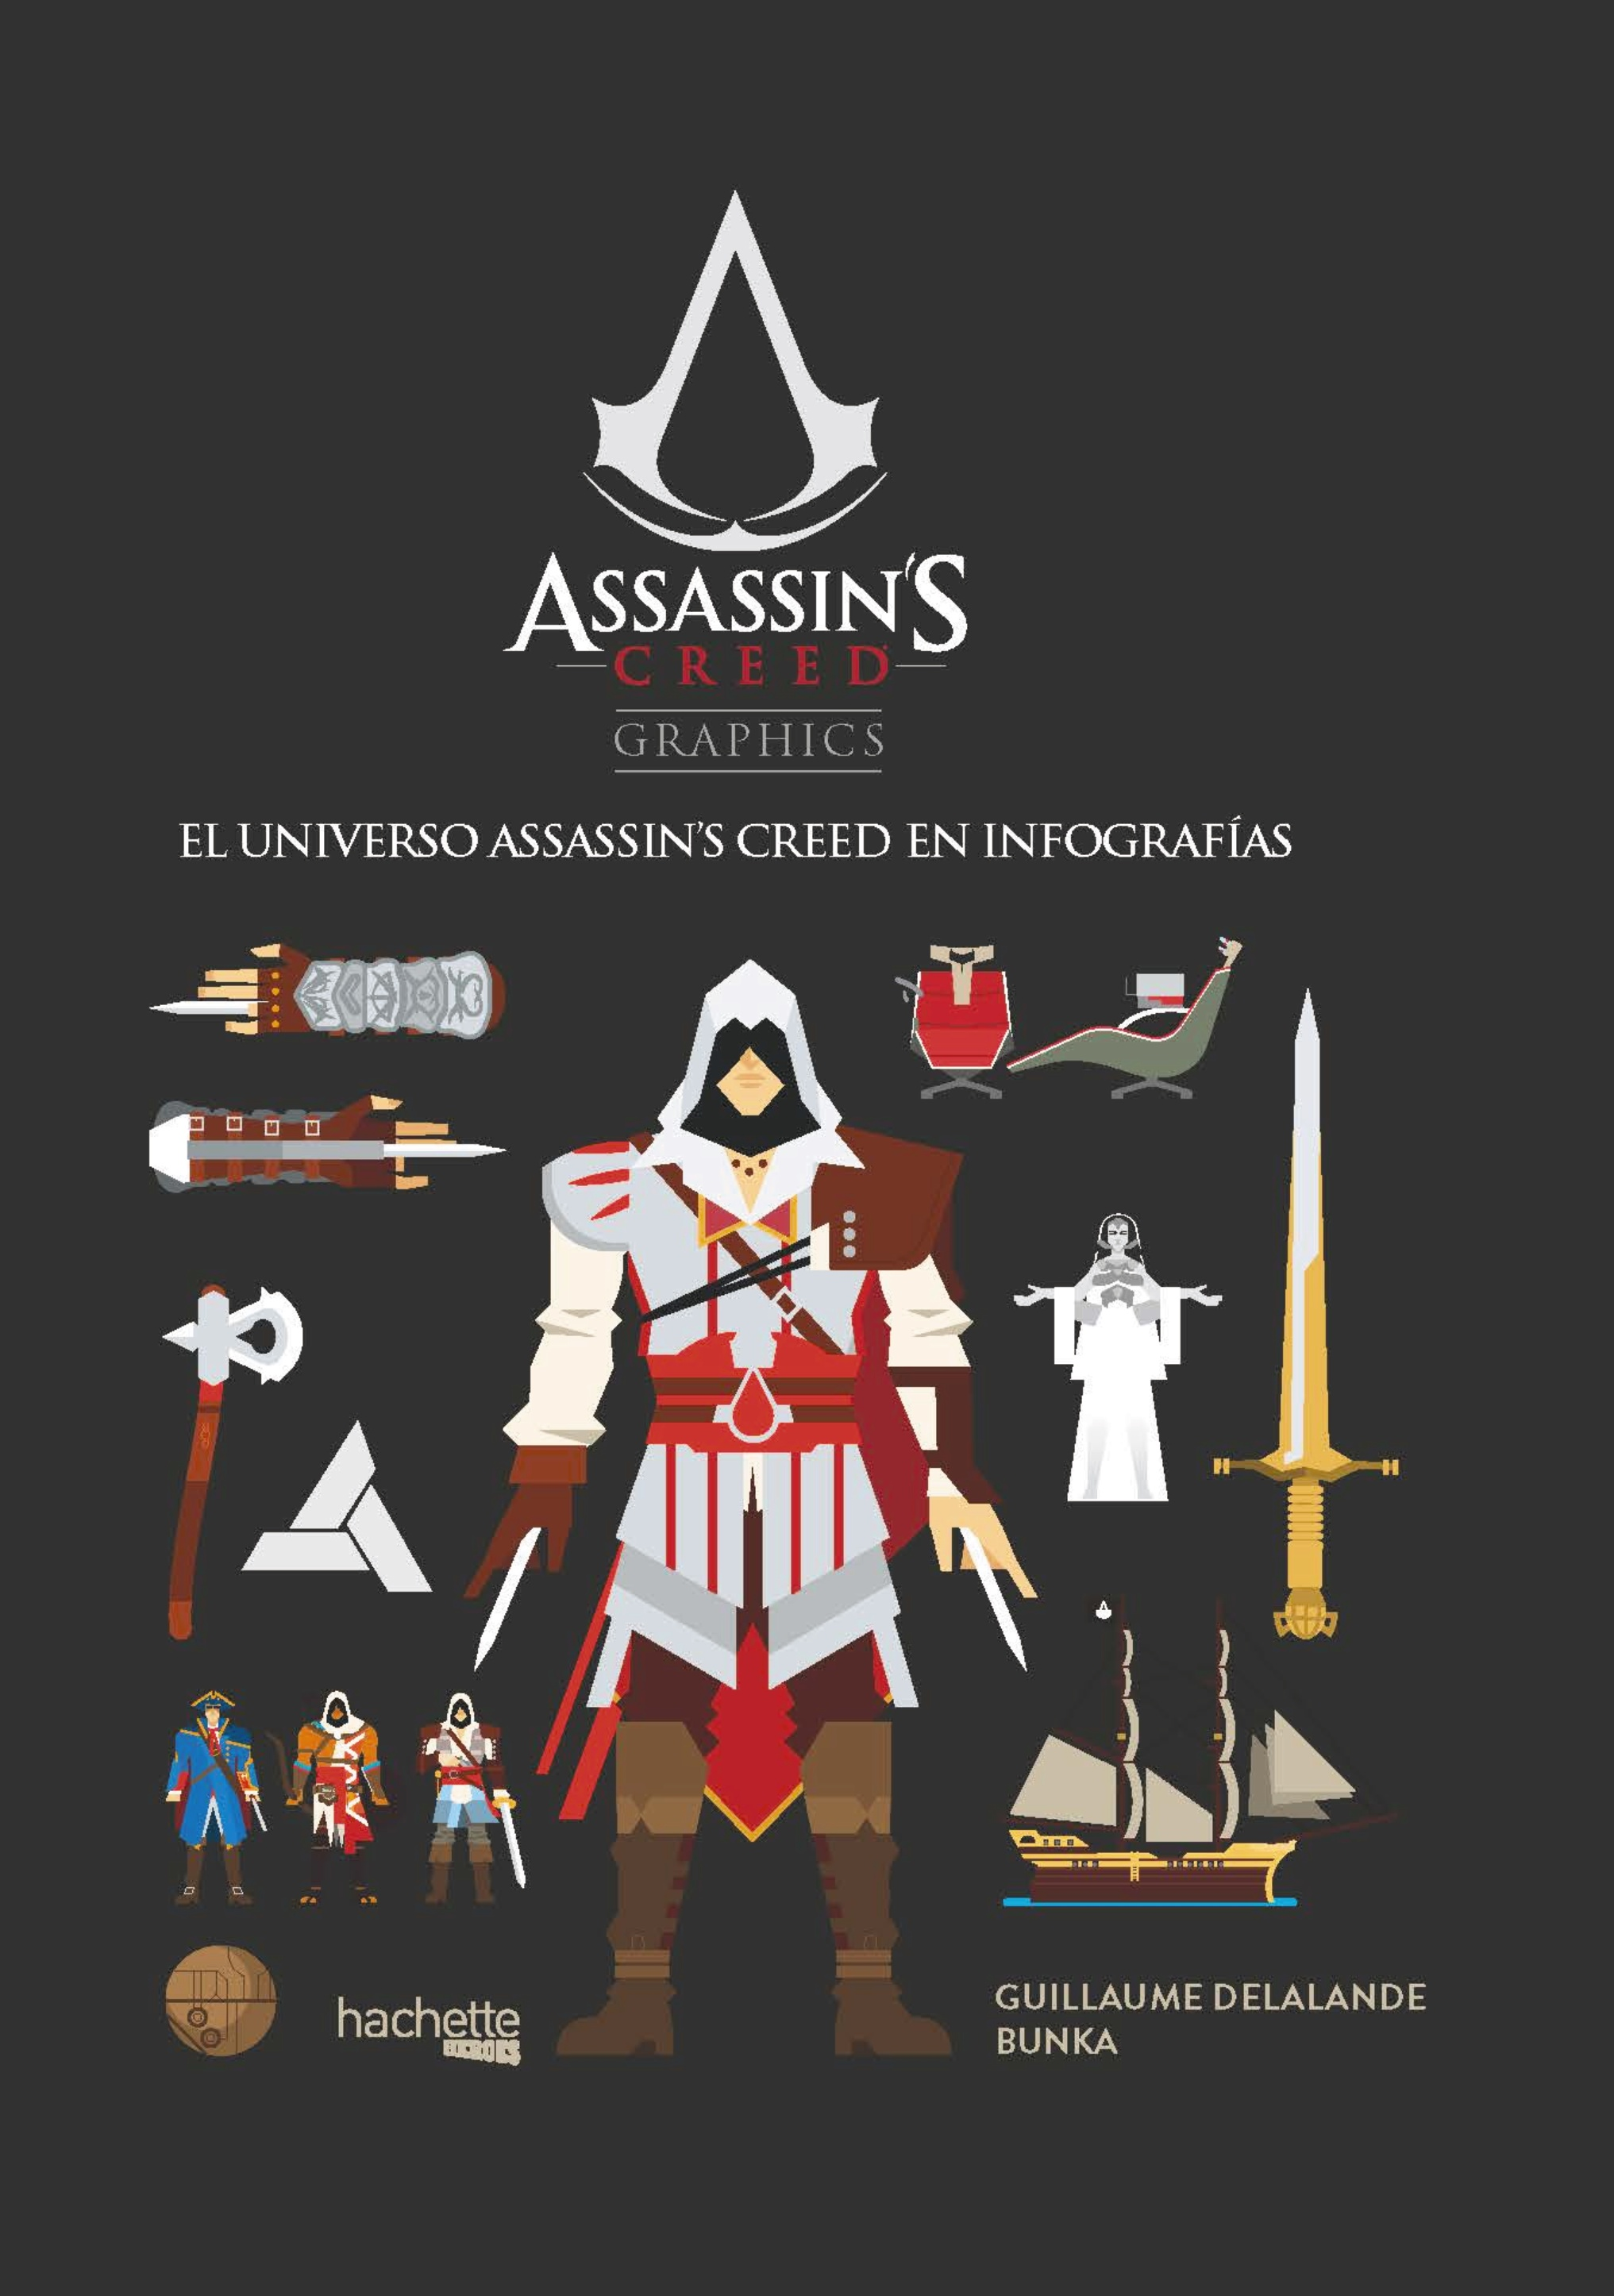 Assassins Creed Graphics